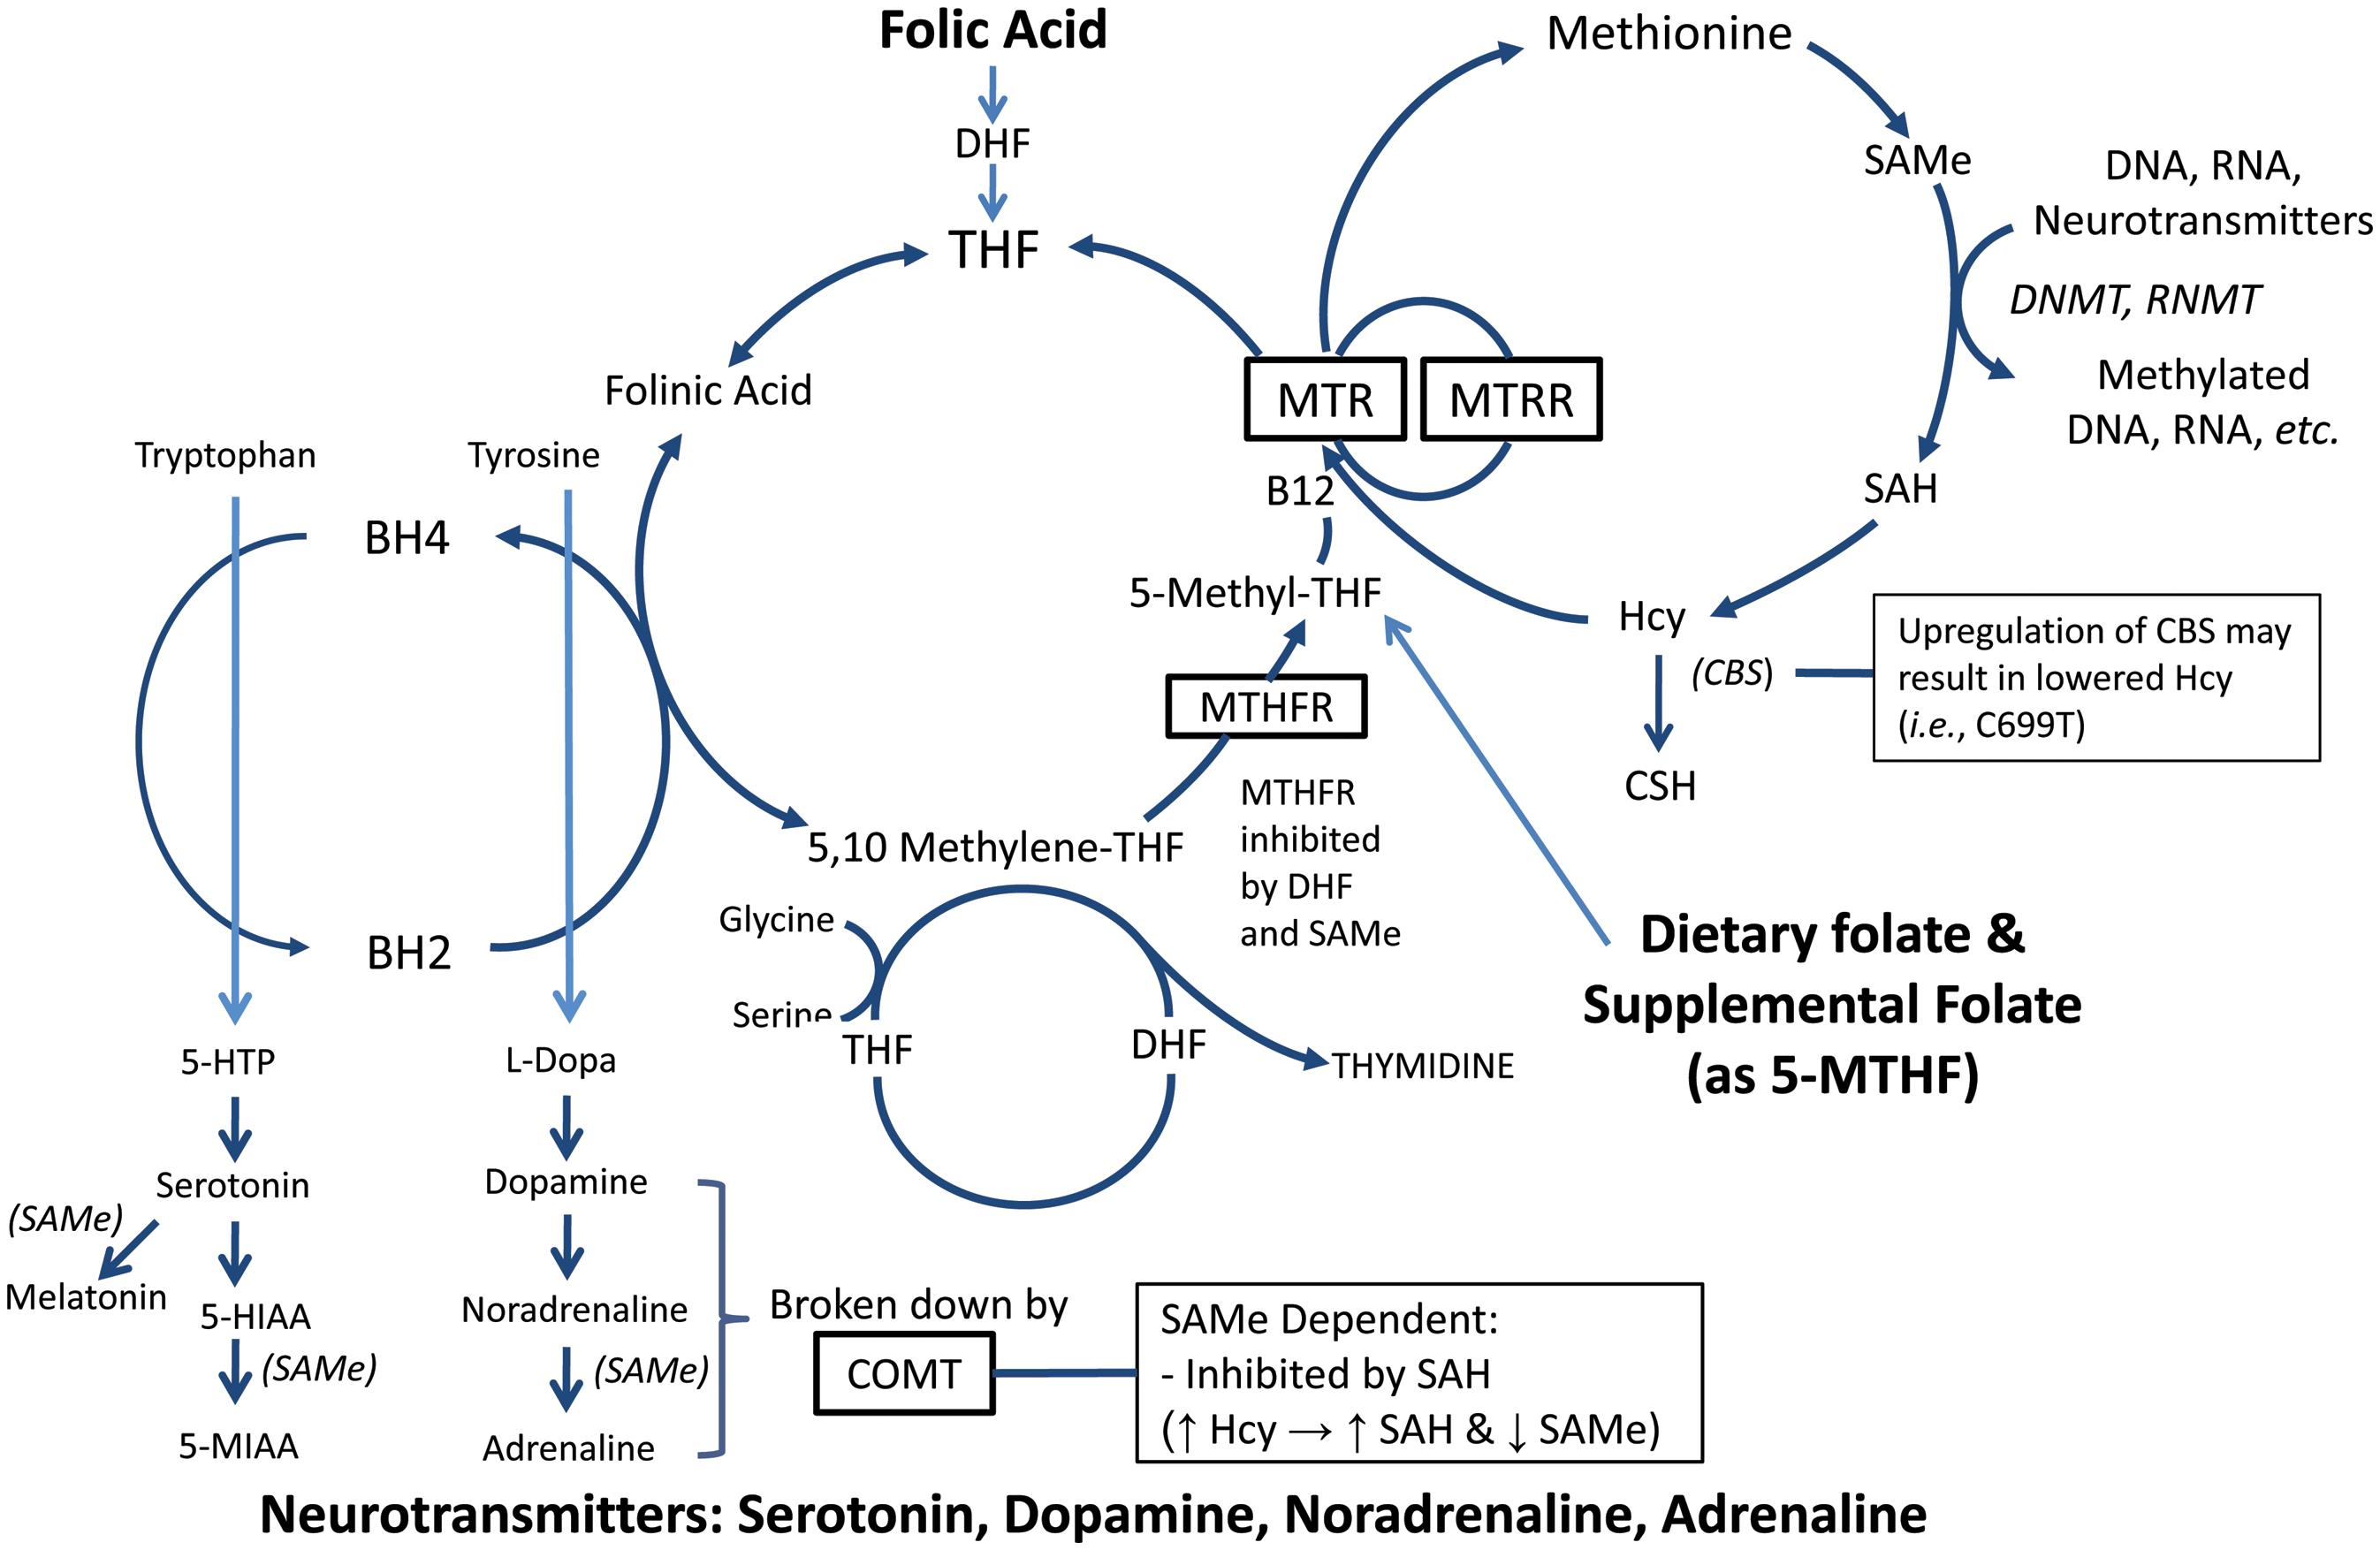 Effect of Folate Supplementation on Inflammatory Markers in